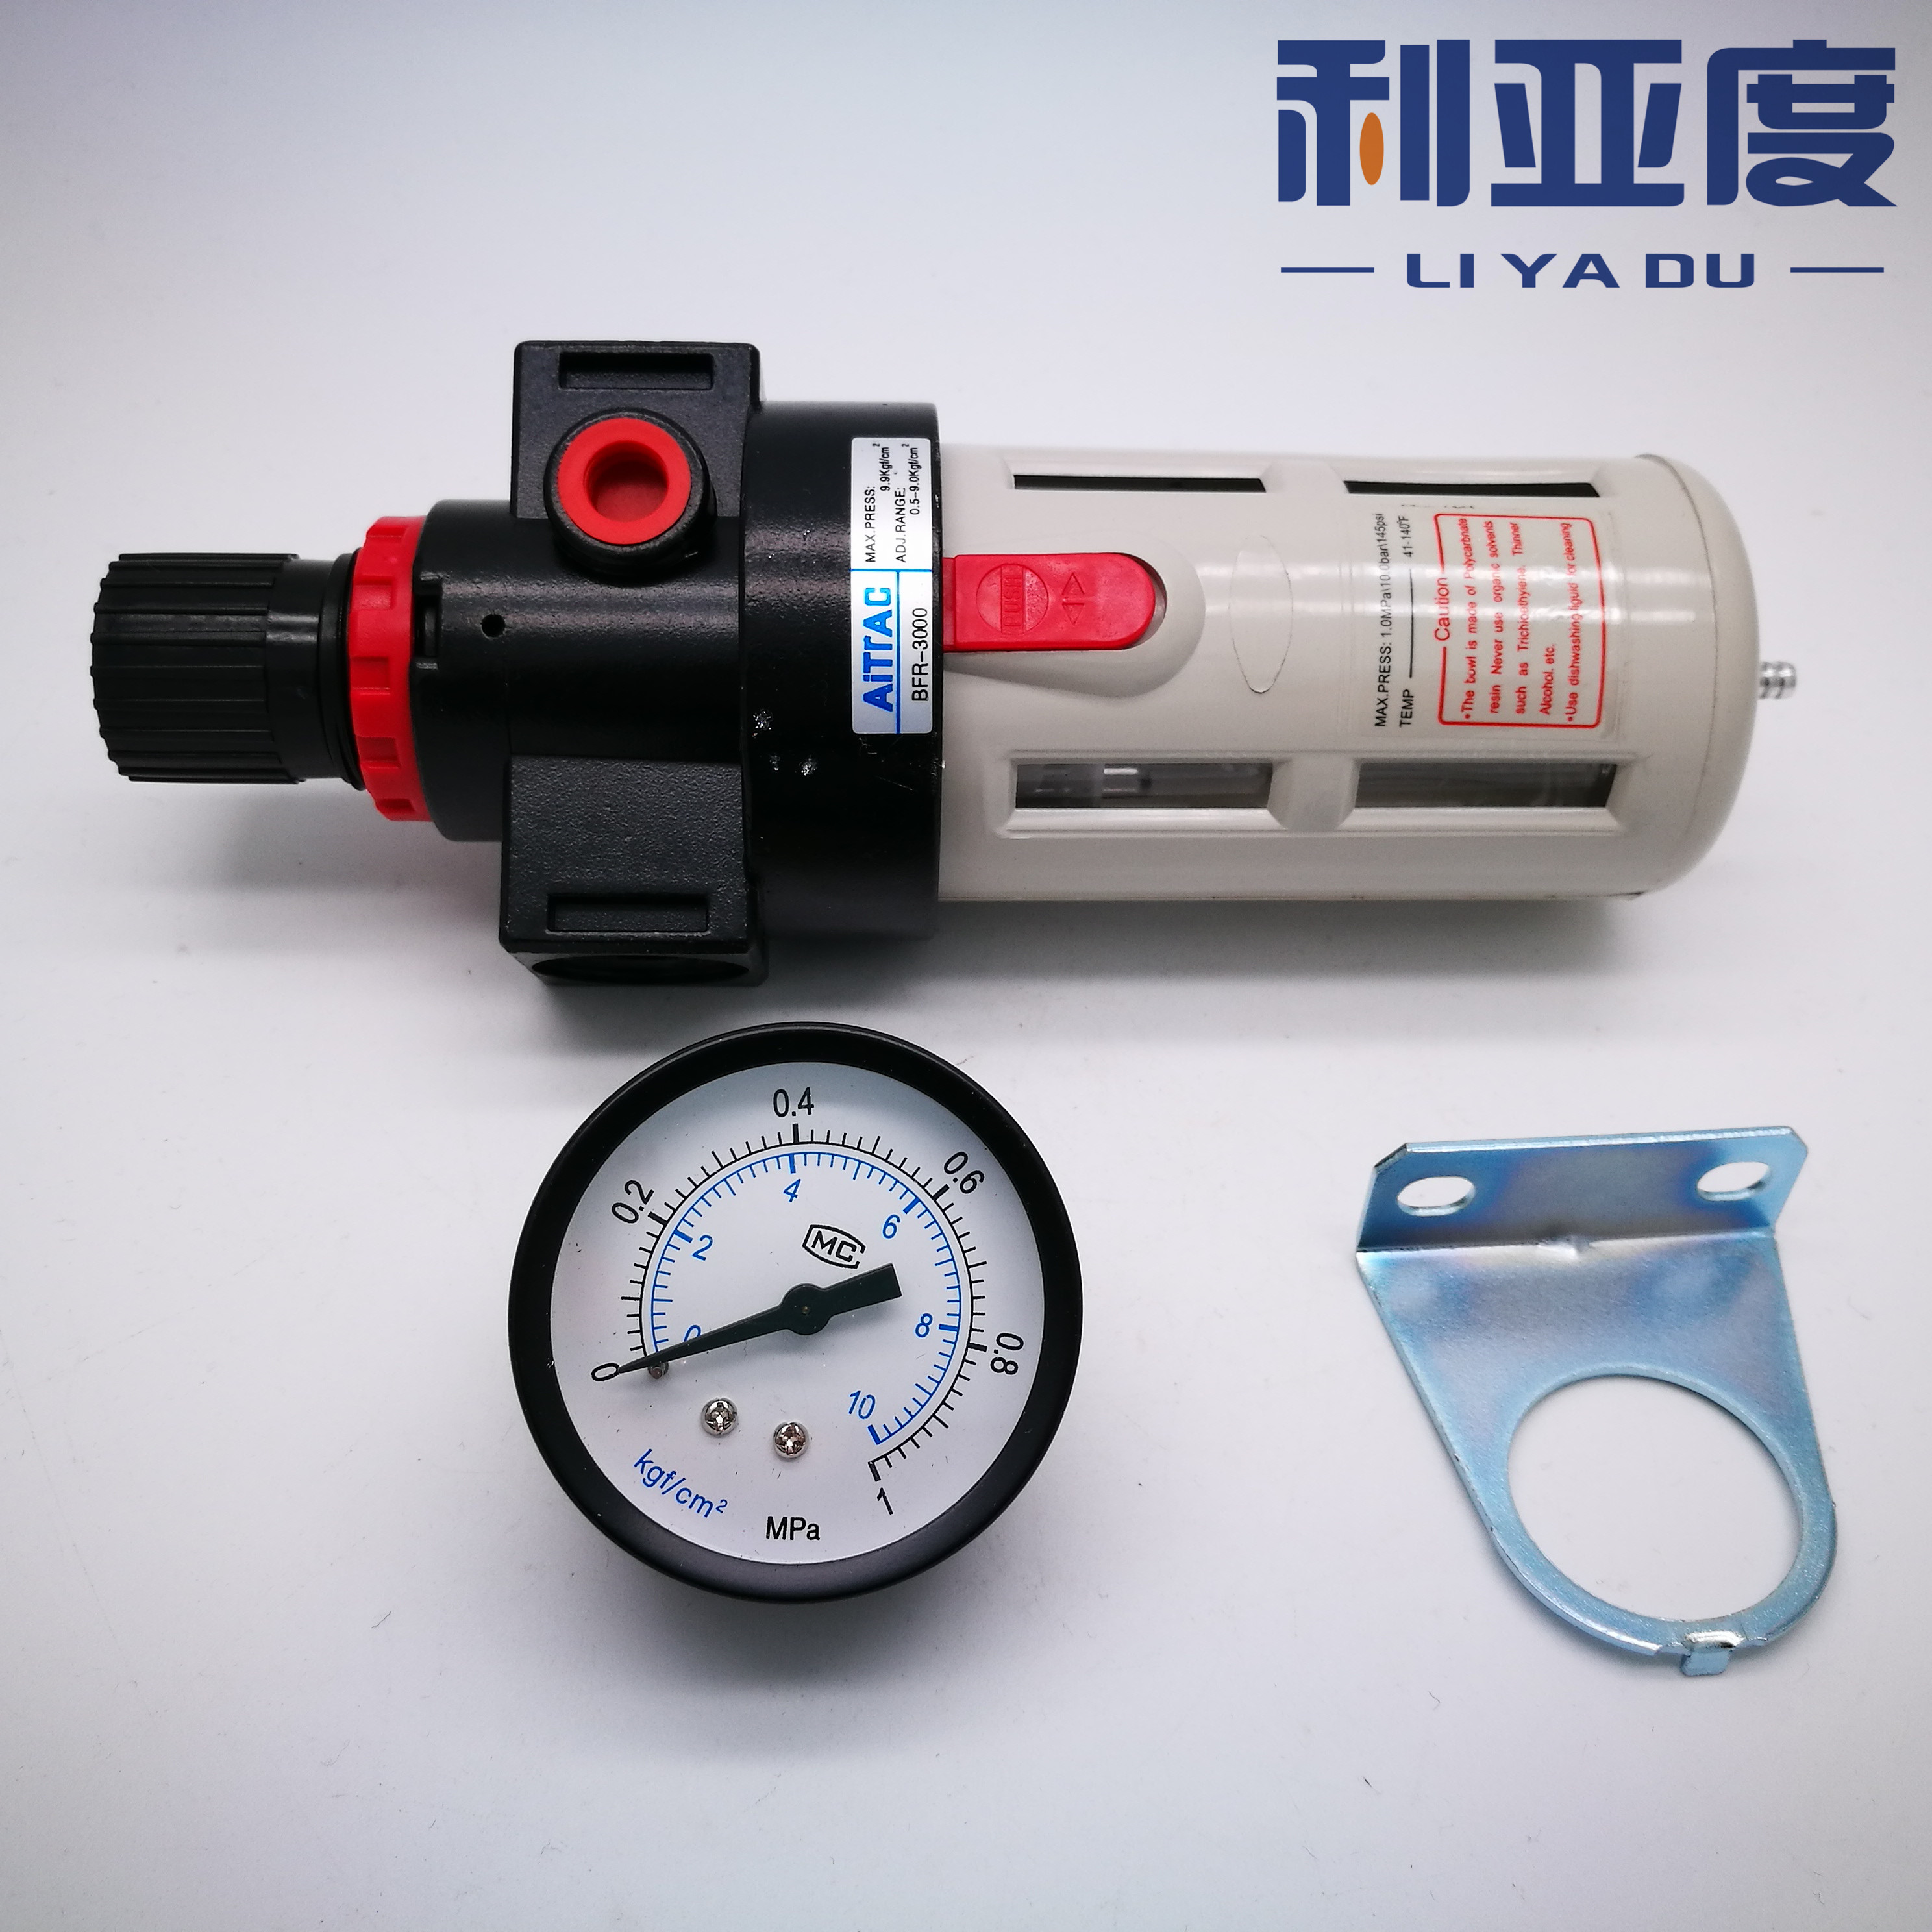 AirTAC type BFR2000 <font><b>BFR3000</b></font> BFR4000 pressure regulating filter BFR-4000 filter pressure regulator valve oil-water separator image